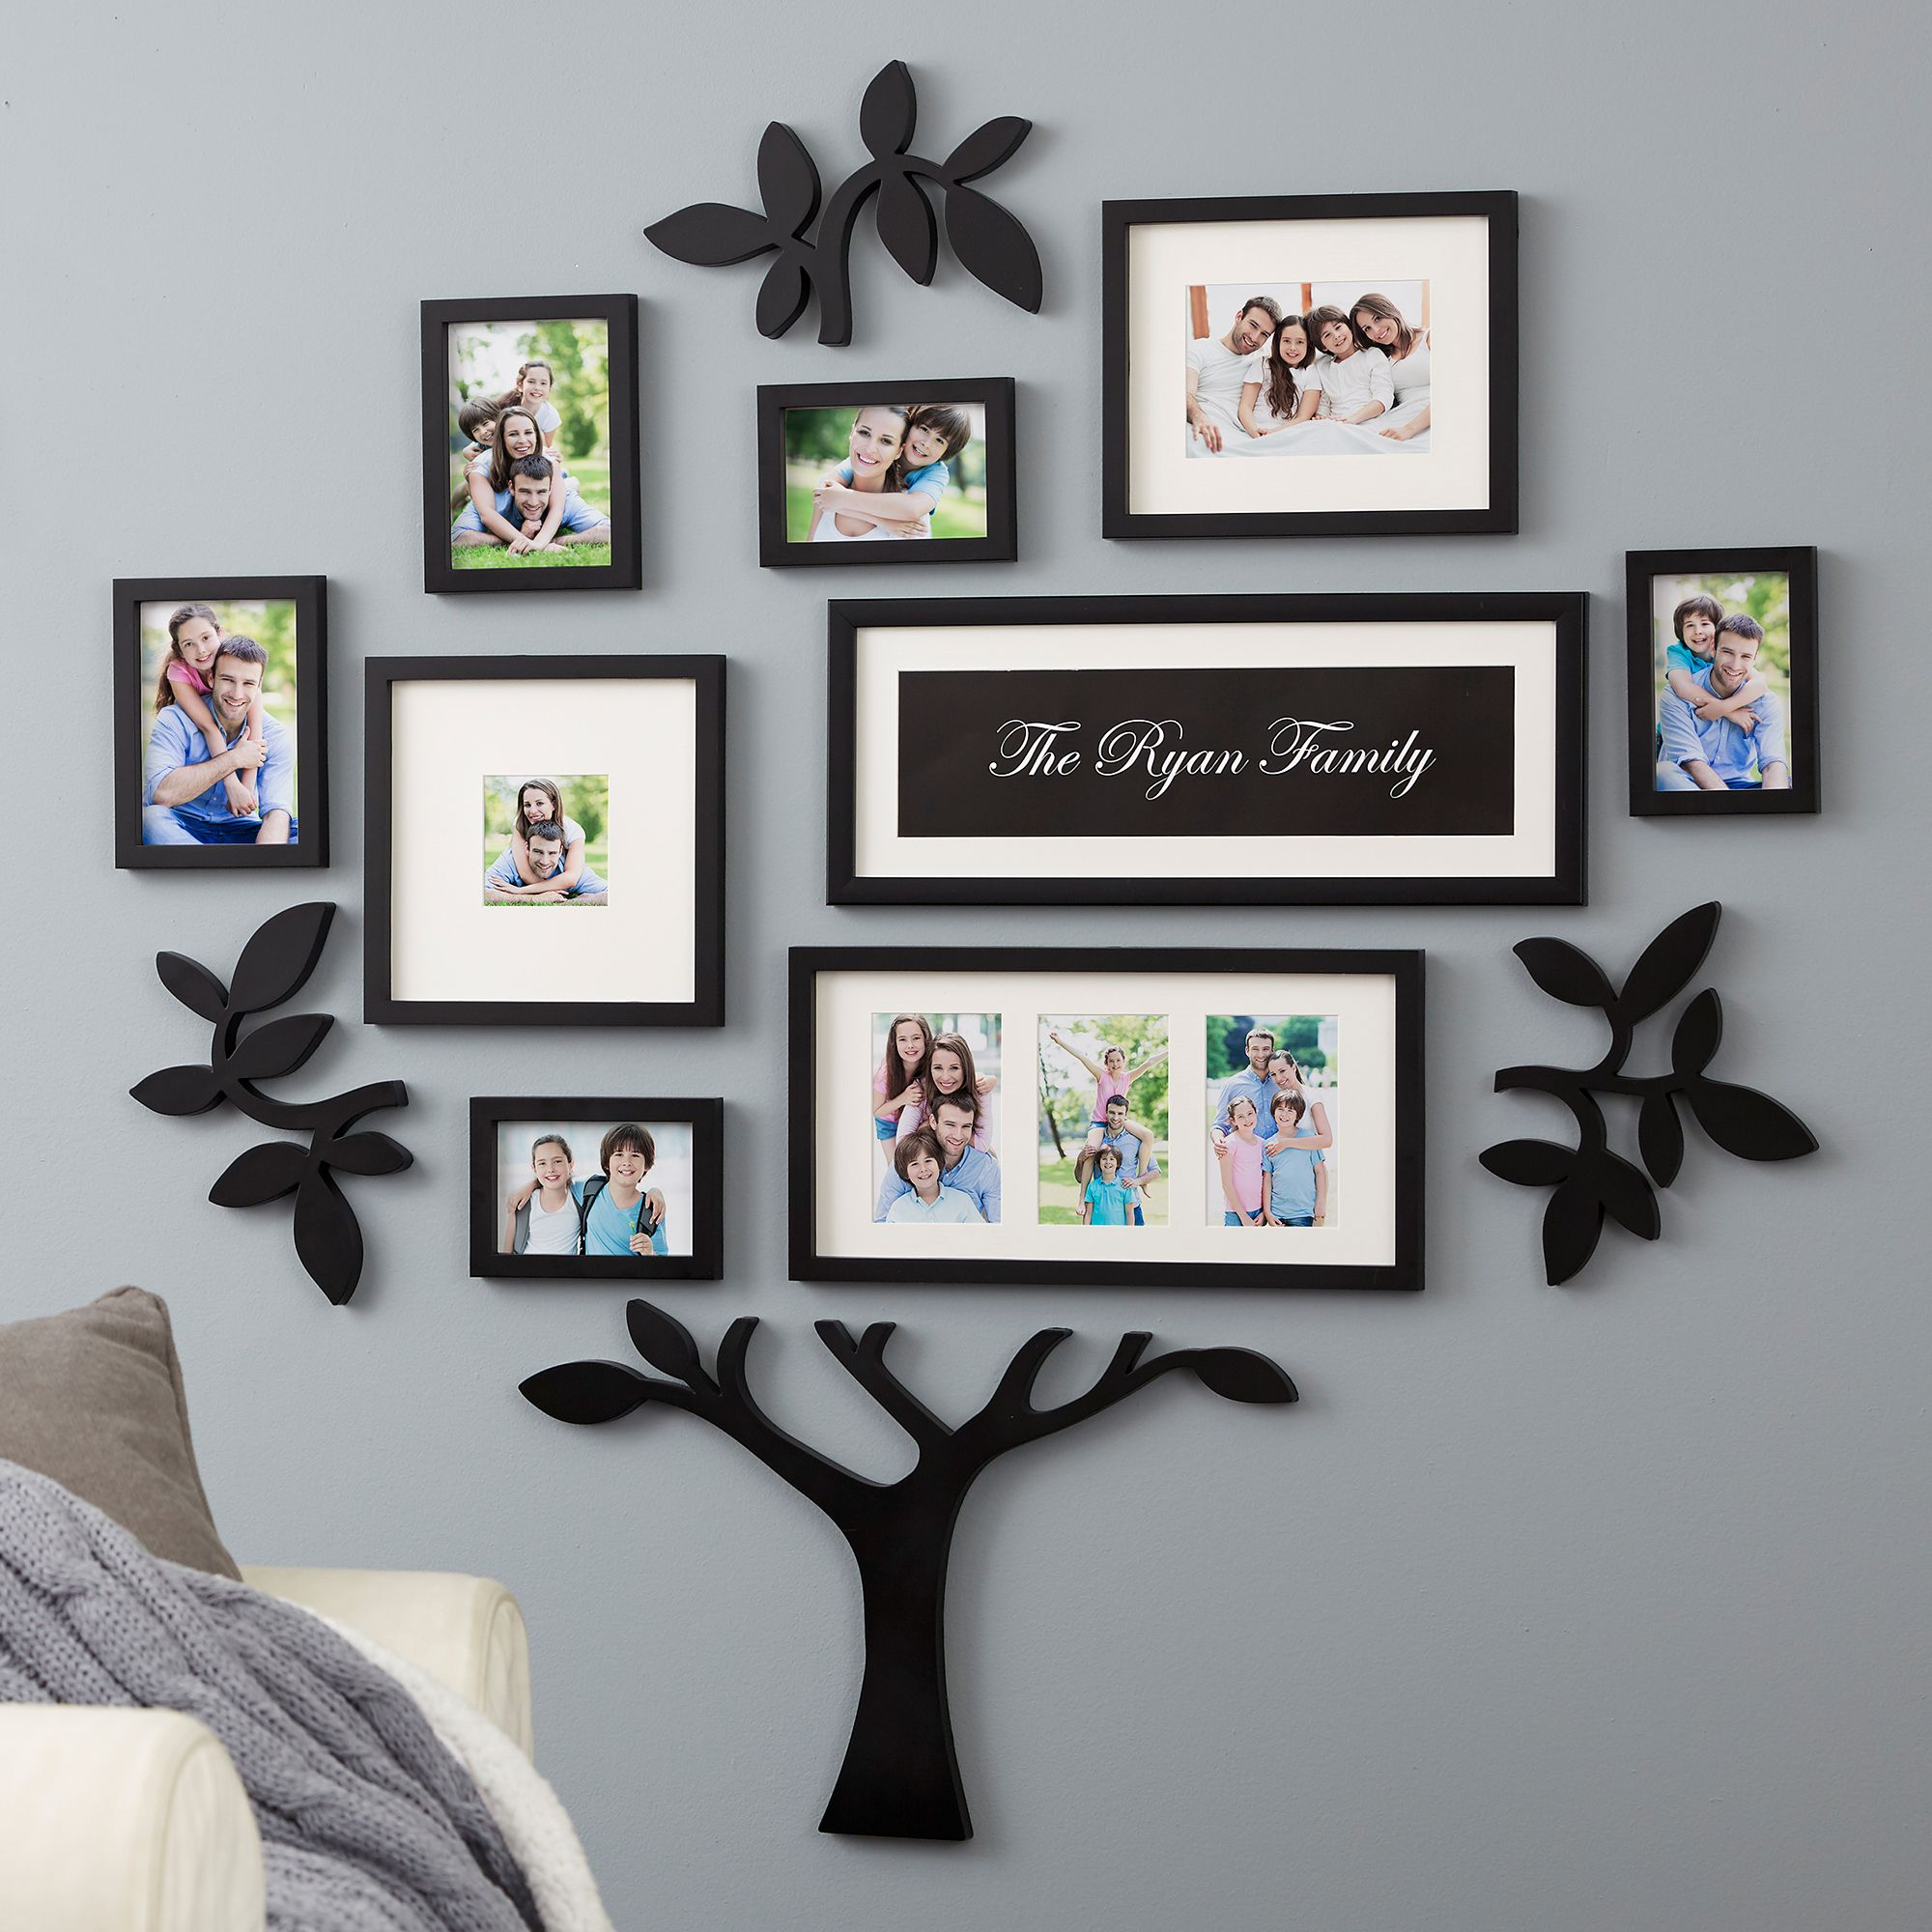 19704 wallverbs our family personalized picture frame